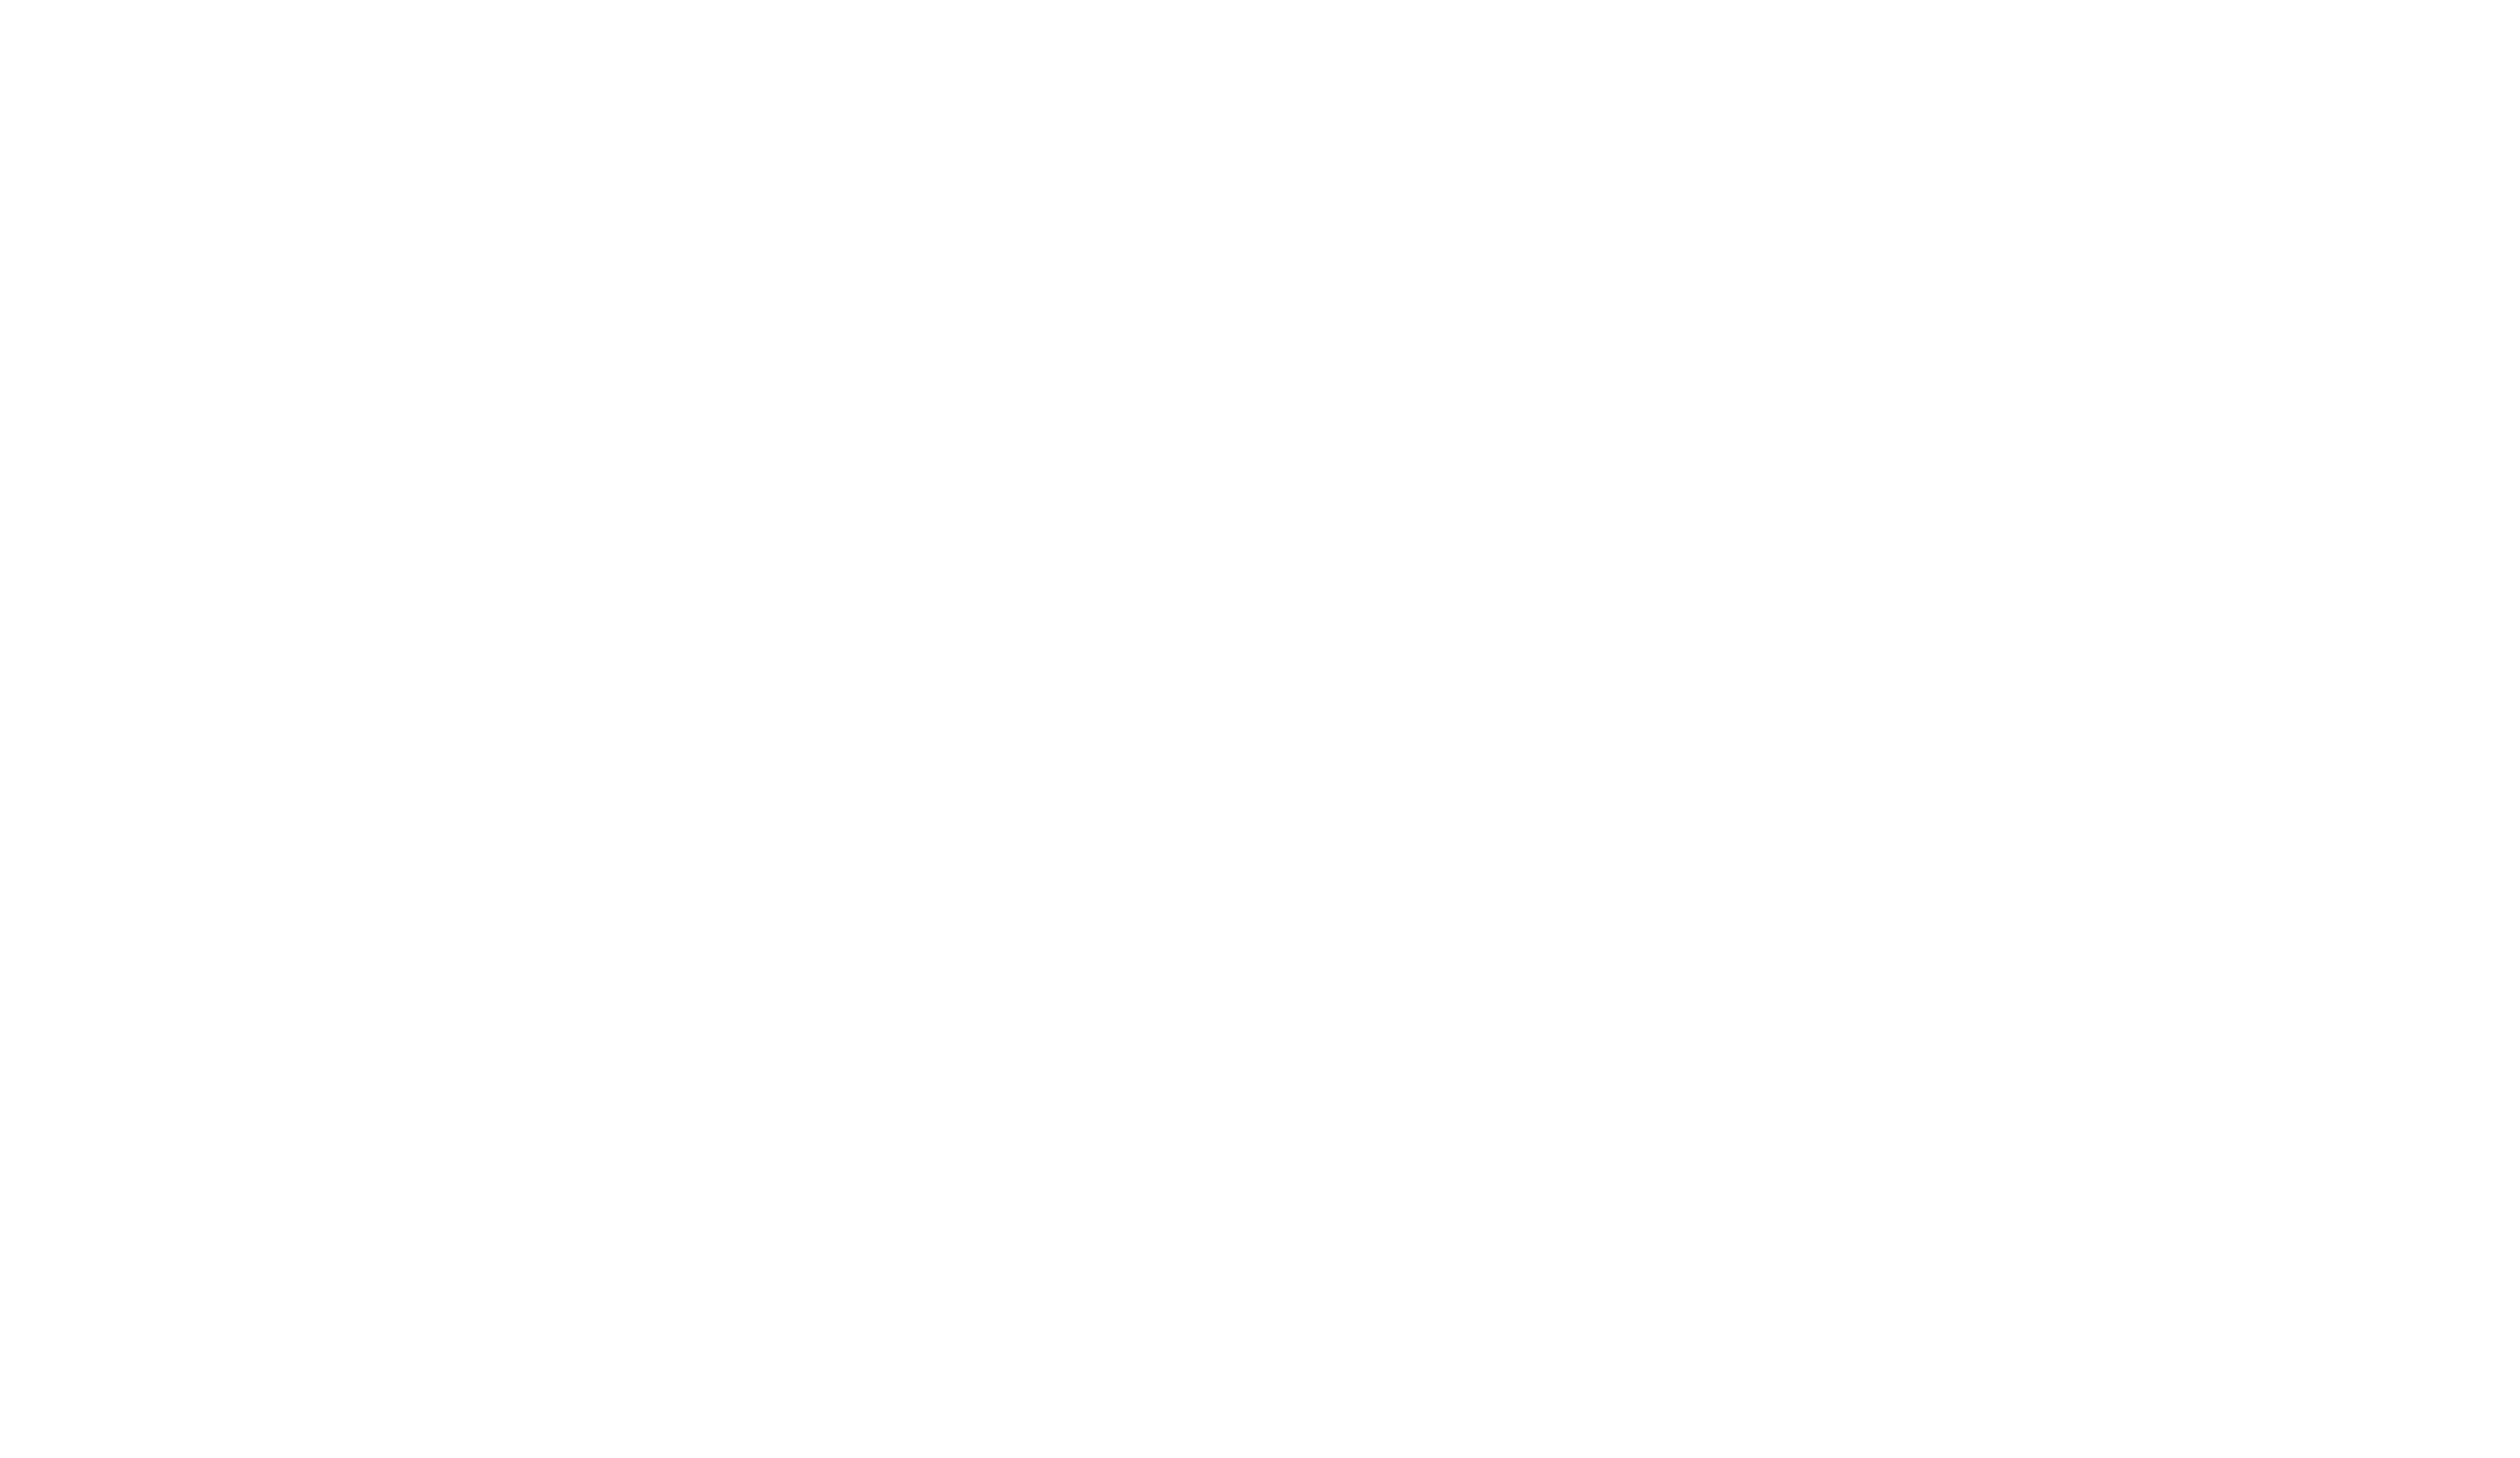 Chevy Woods Logo